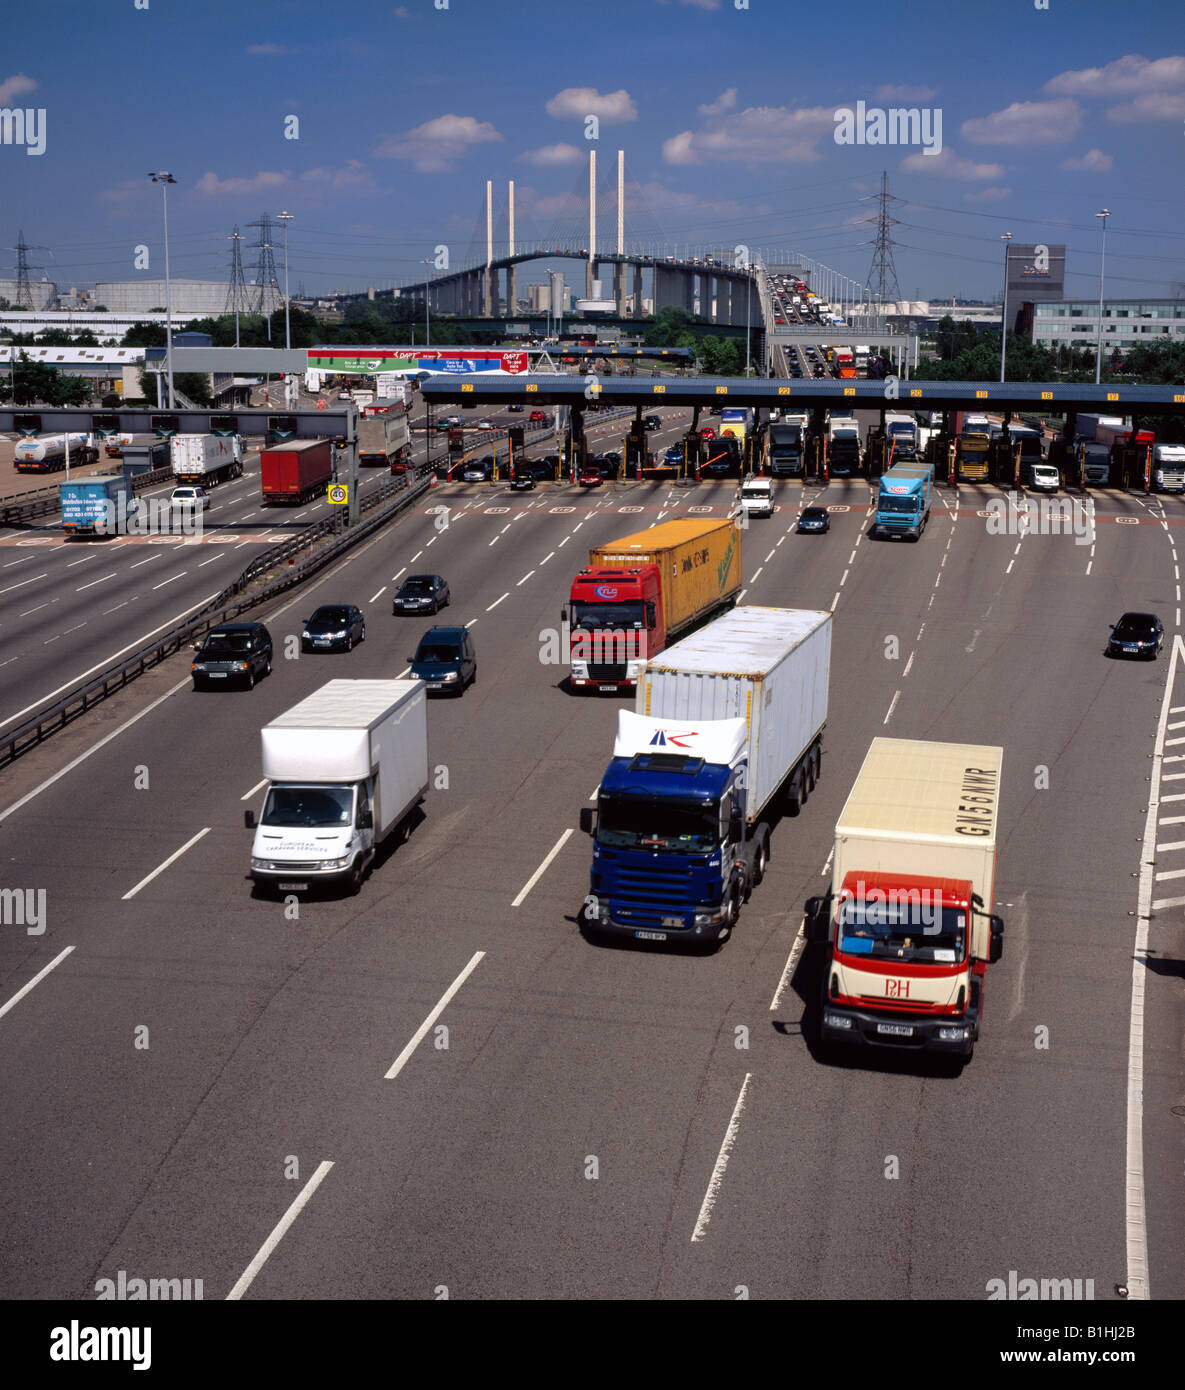 The old Dartford tolls M25, now removed. - Stock Image